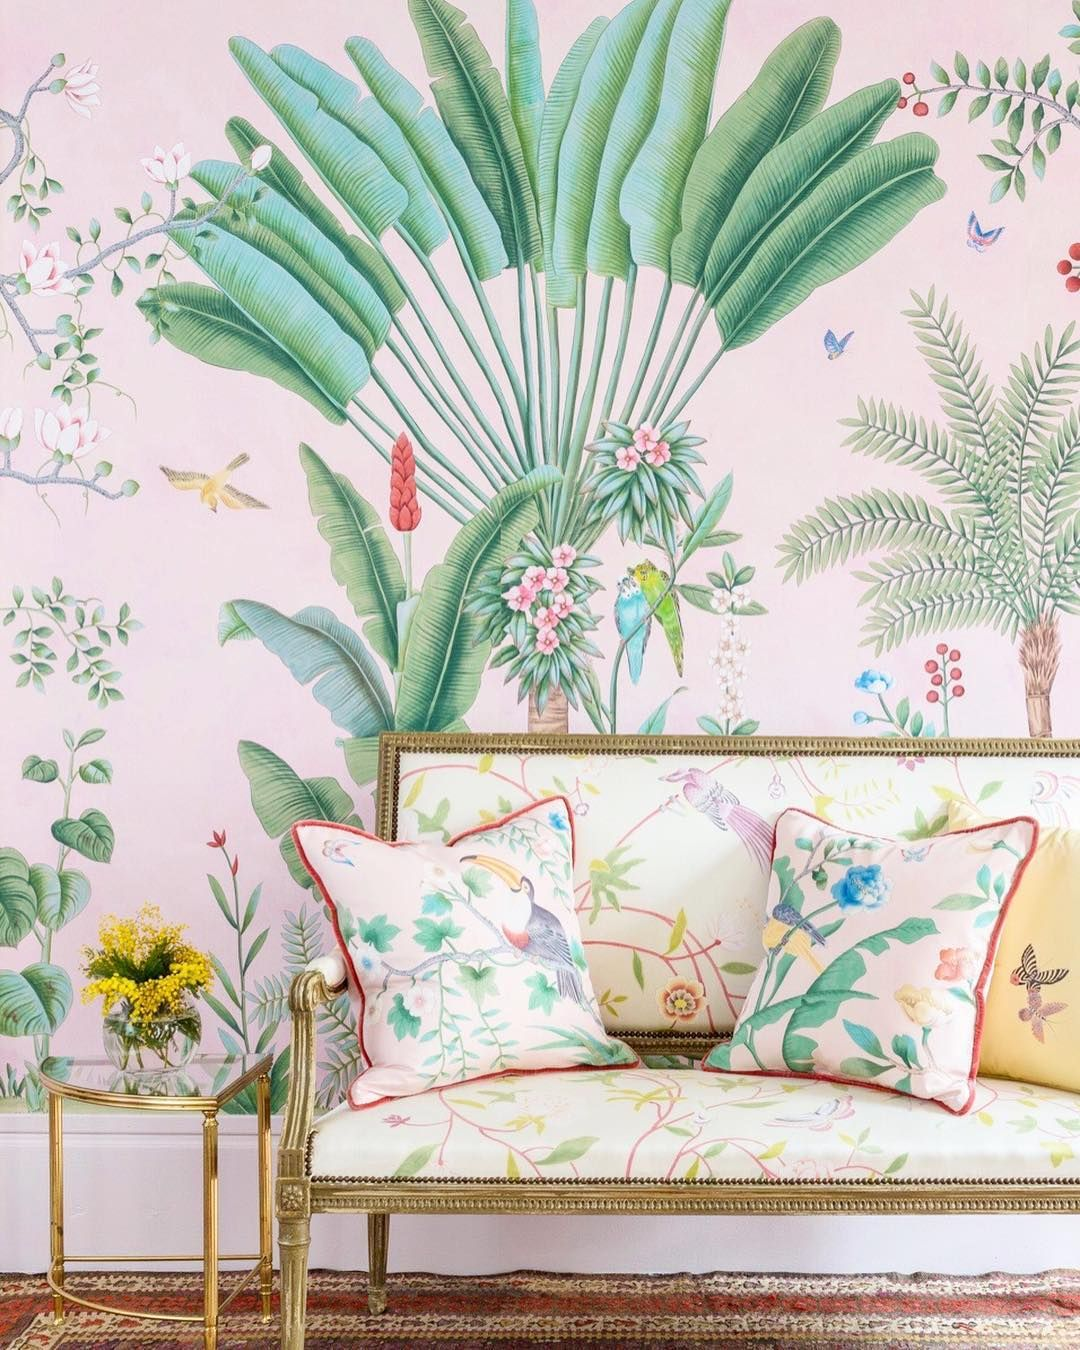 Pin by Nicole Schön (Heart of Glam) on HOME DÉCOR